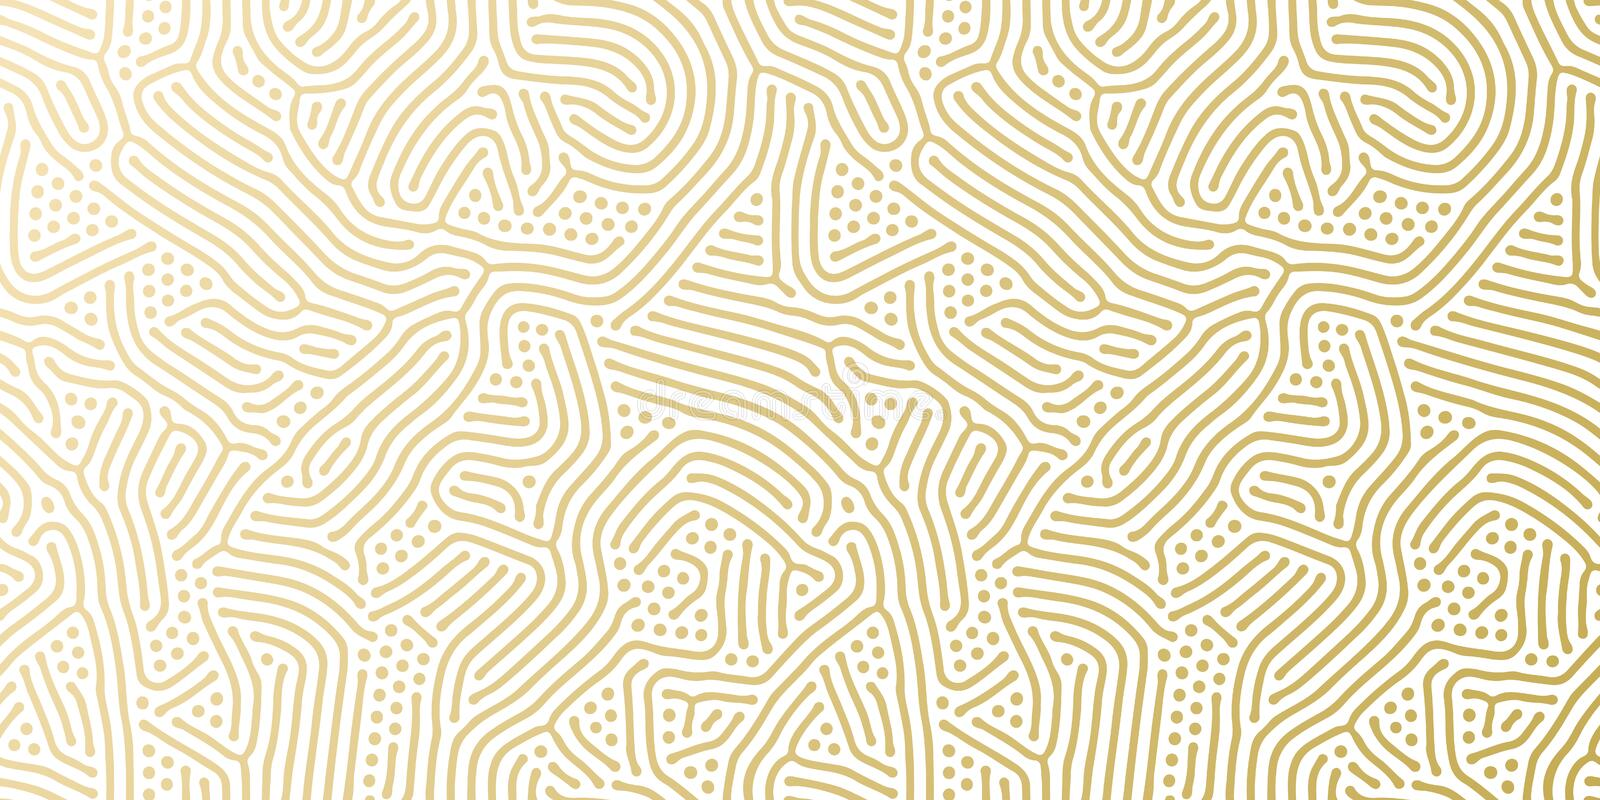 Christmas holiday golden background template for greeting card or gift wrapping paper design. Vector gold abstract pattern for Chr vector illustration